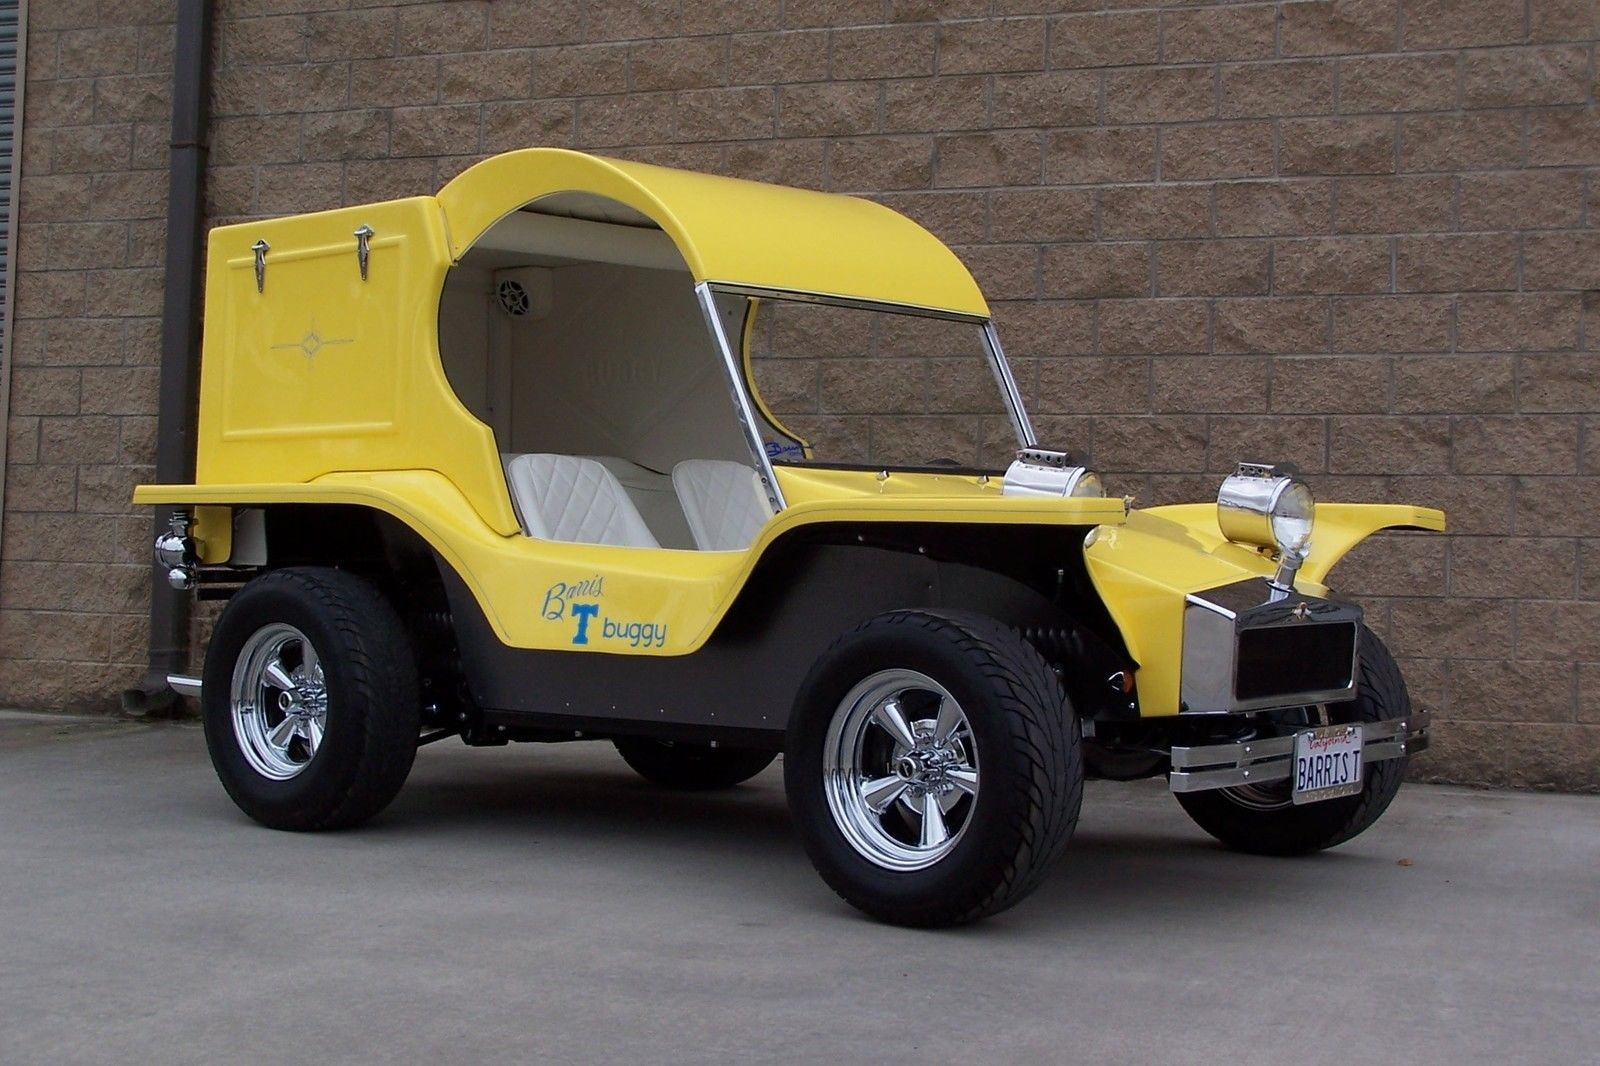 Barris T Buggy with Corvair Power